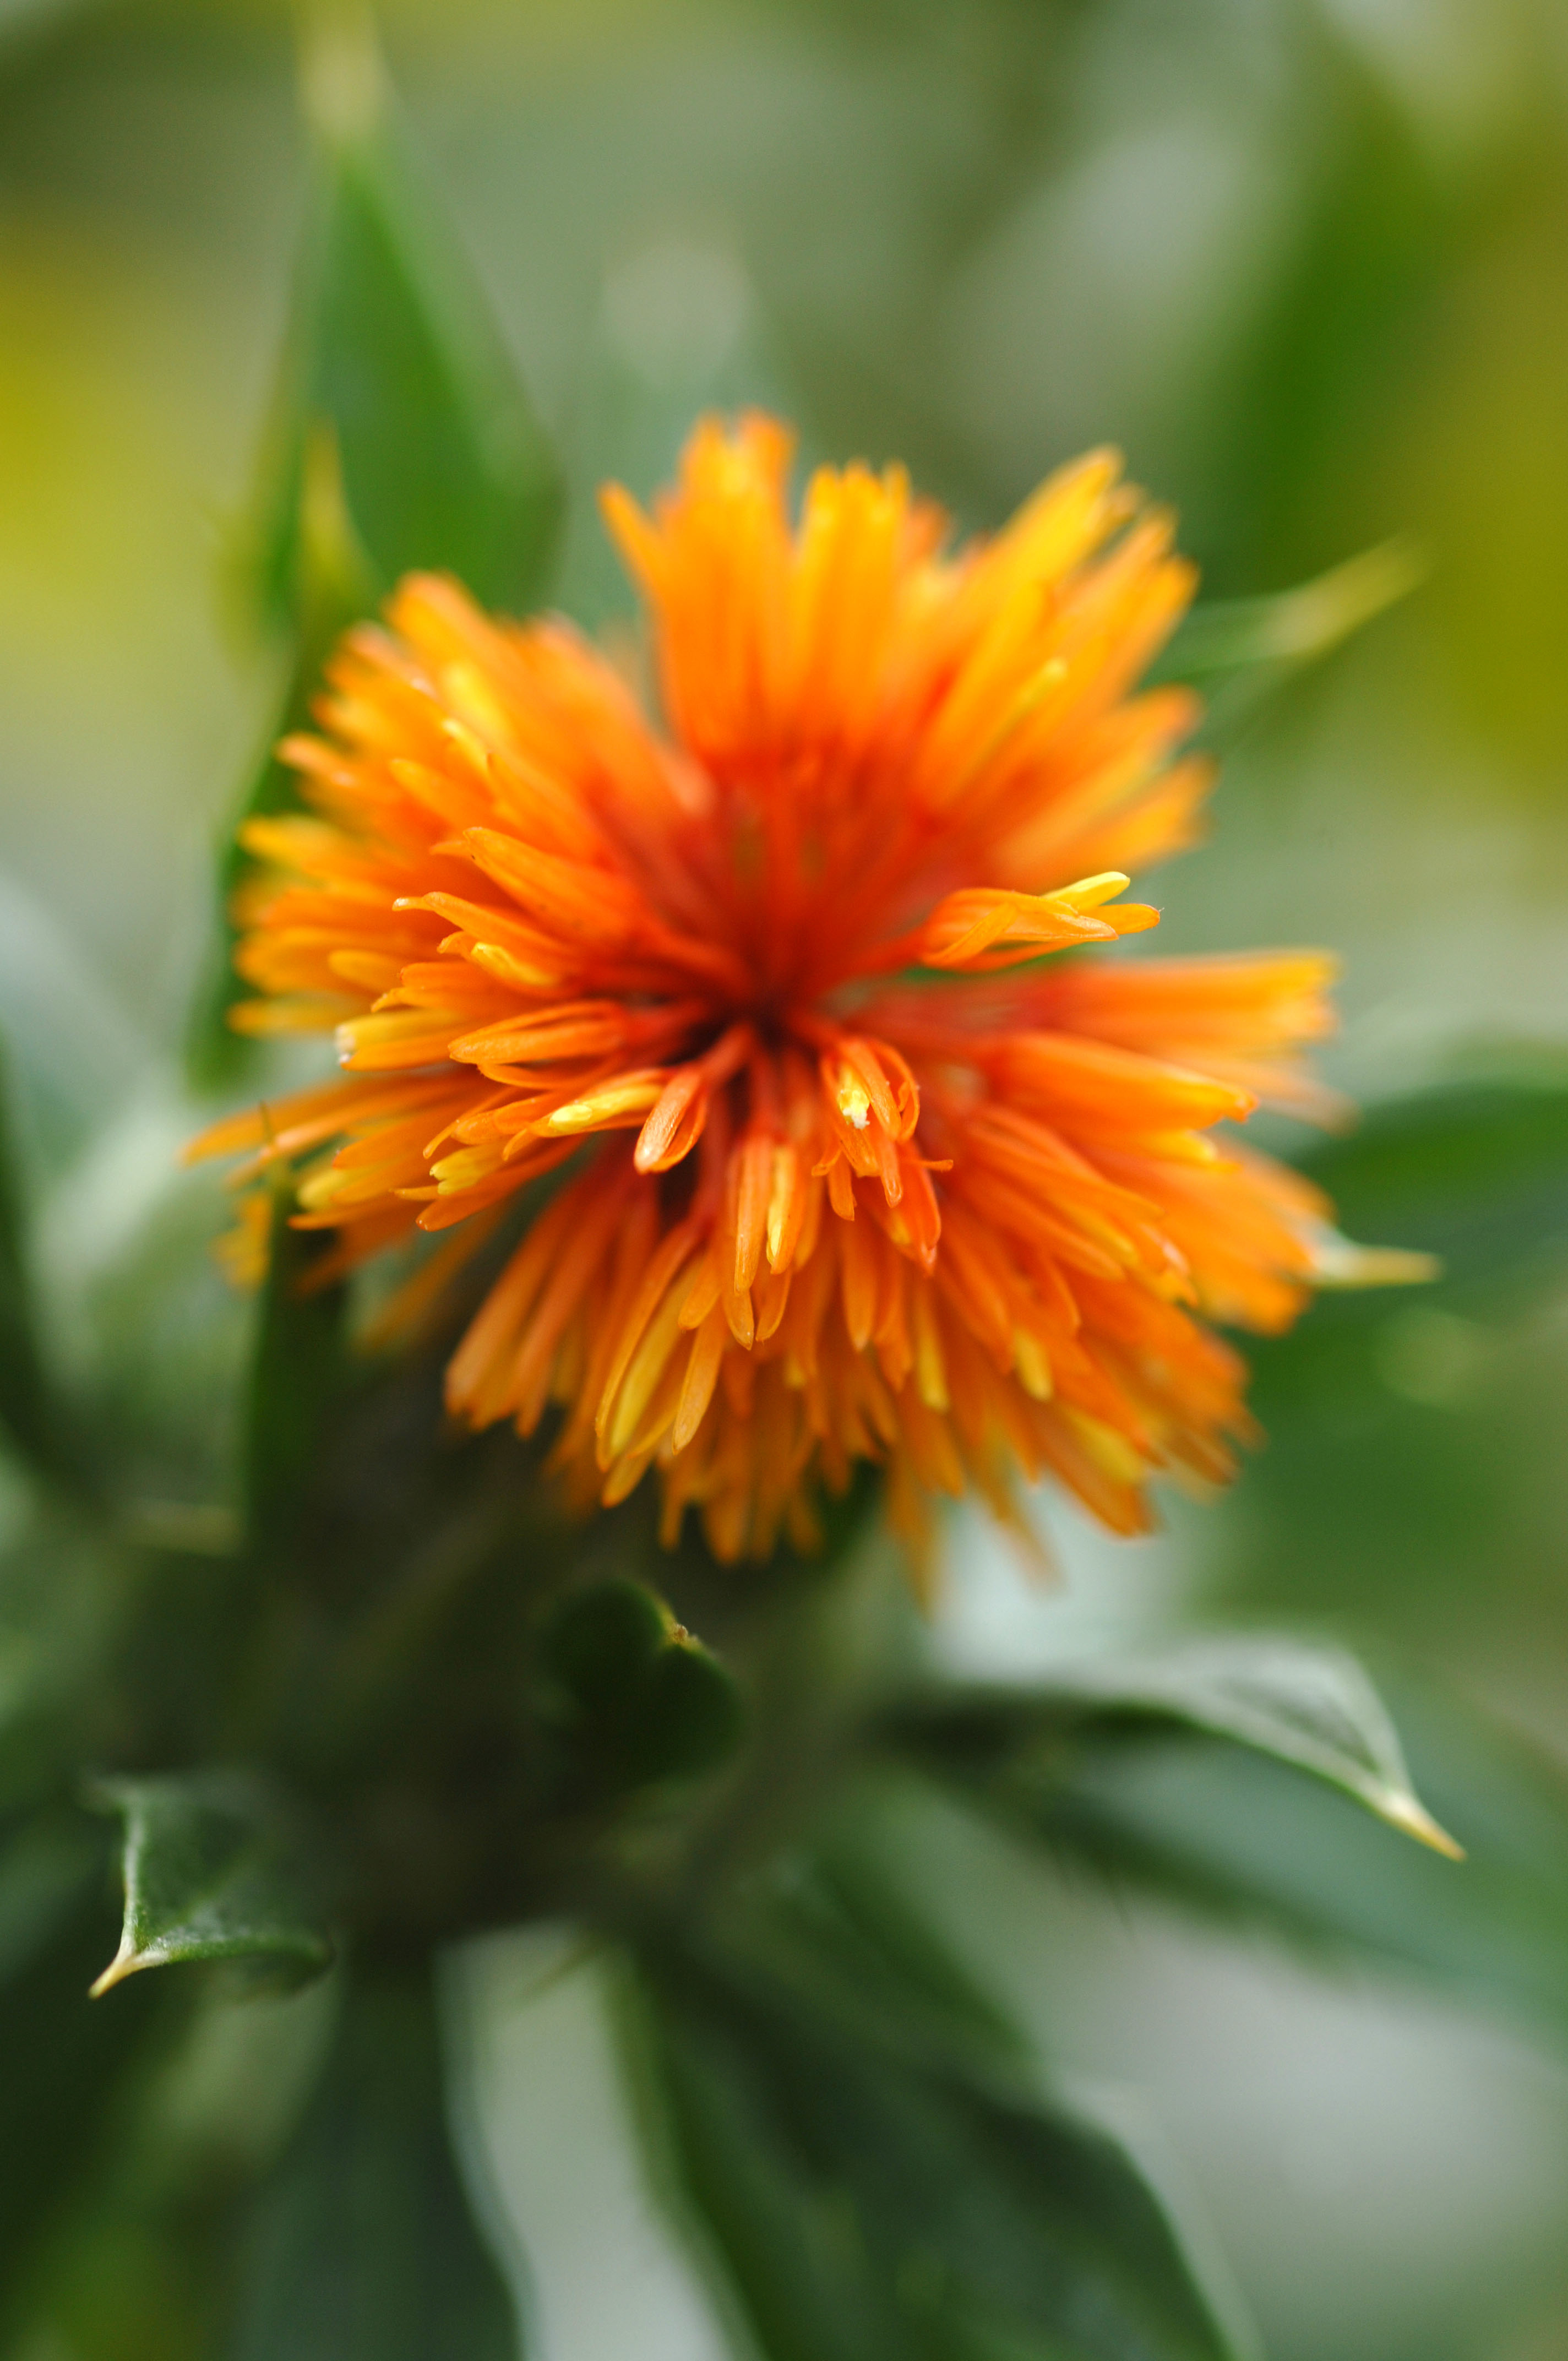 Safflower power! Safflower can be used to produce oils and biomaterials.